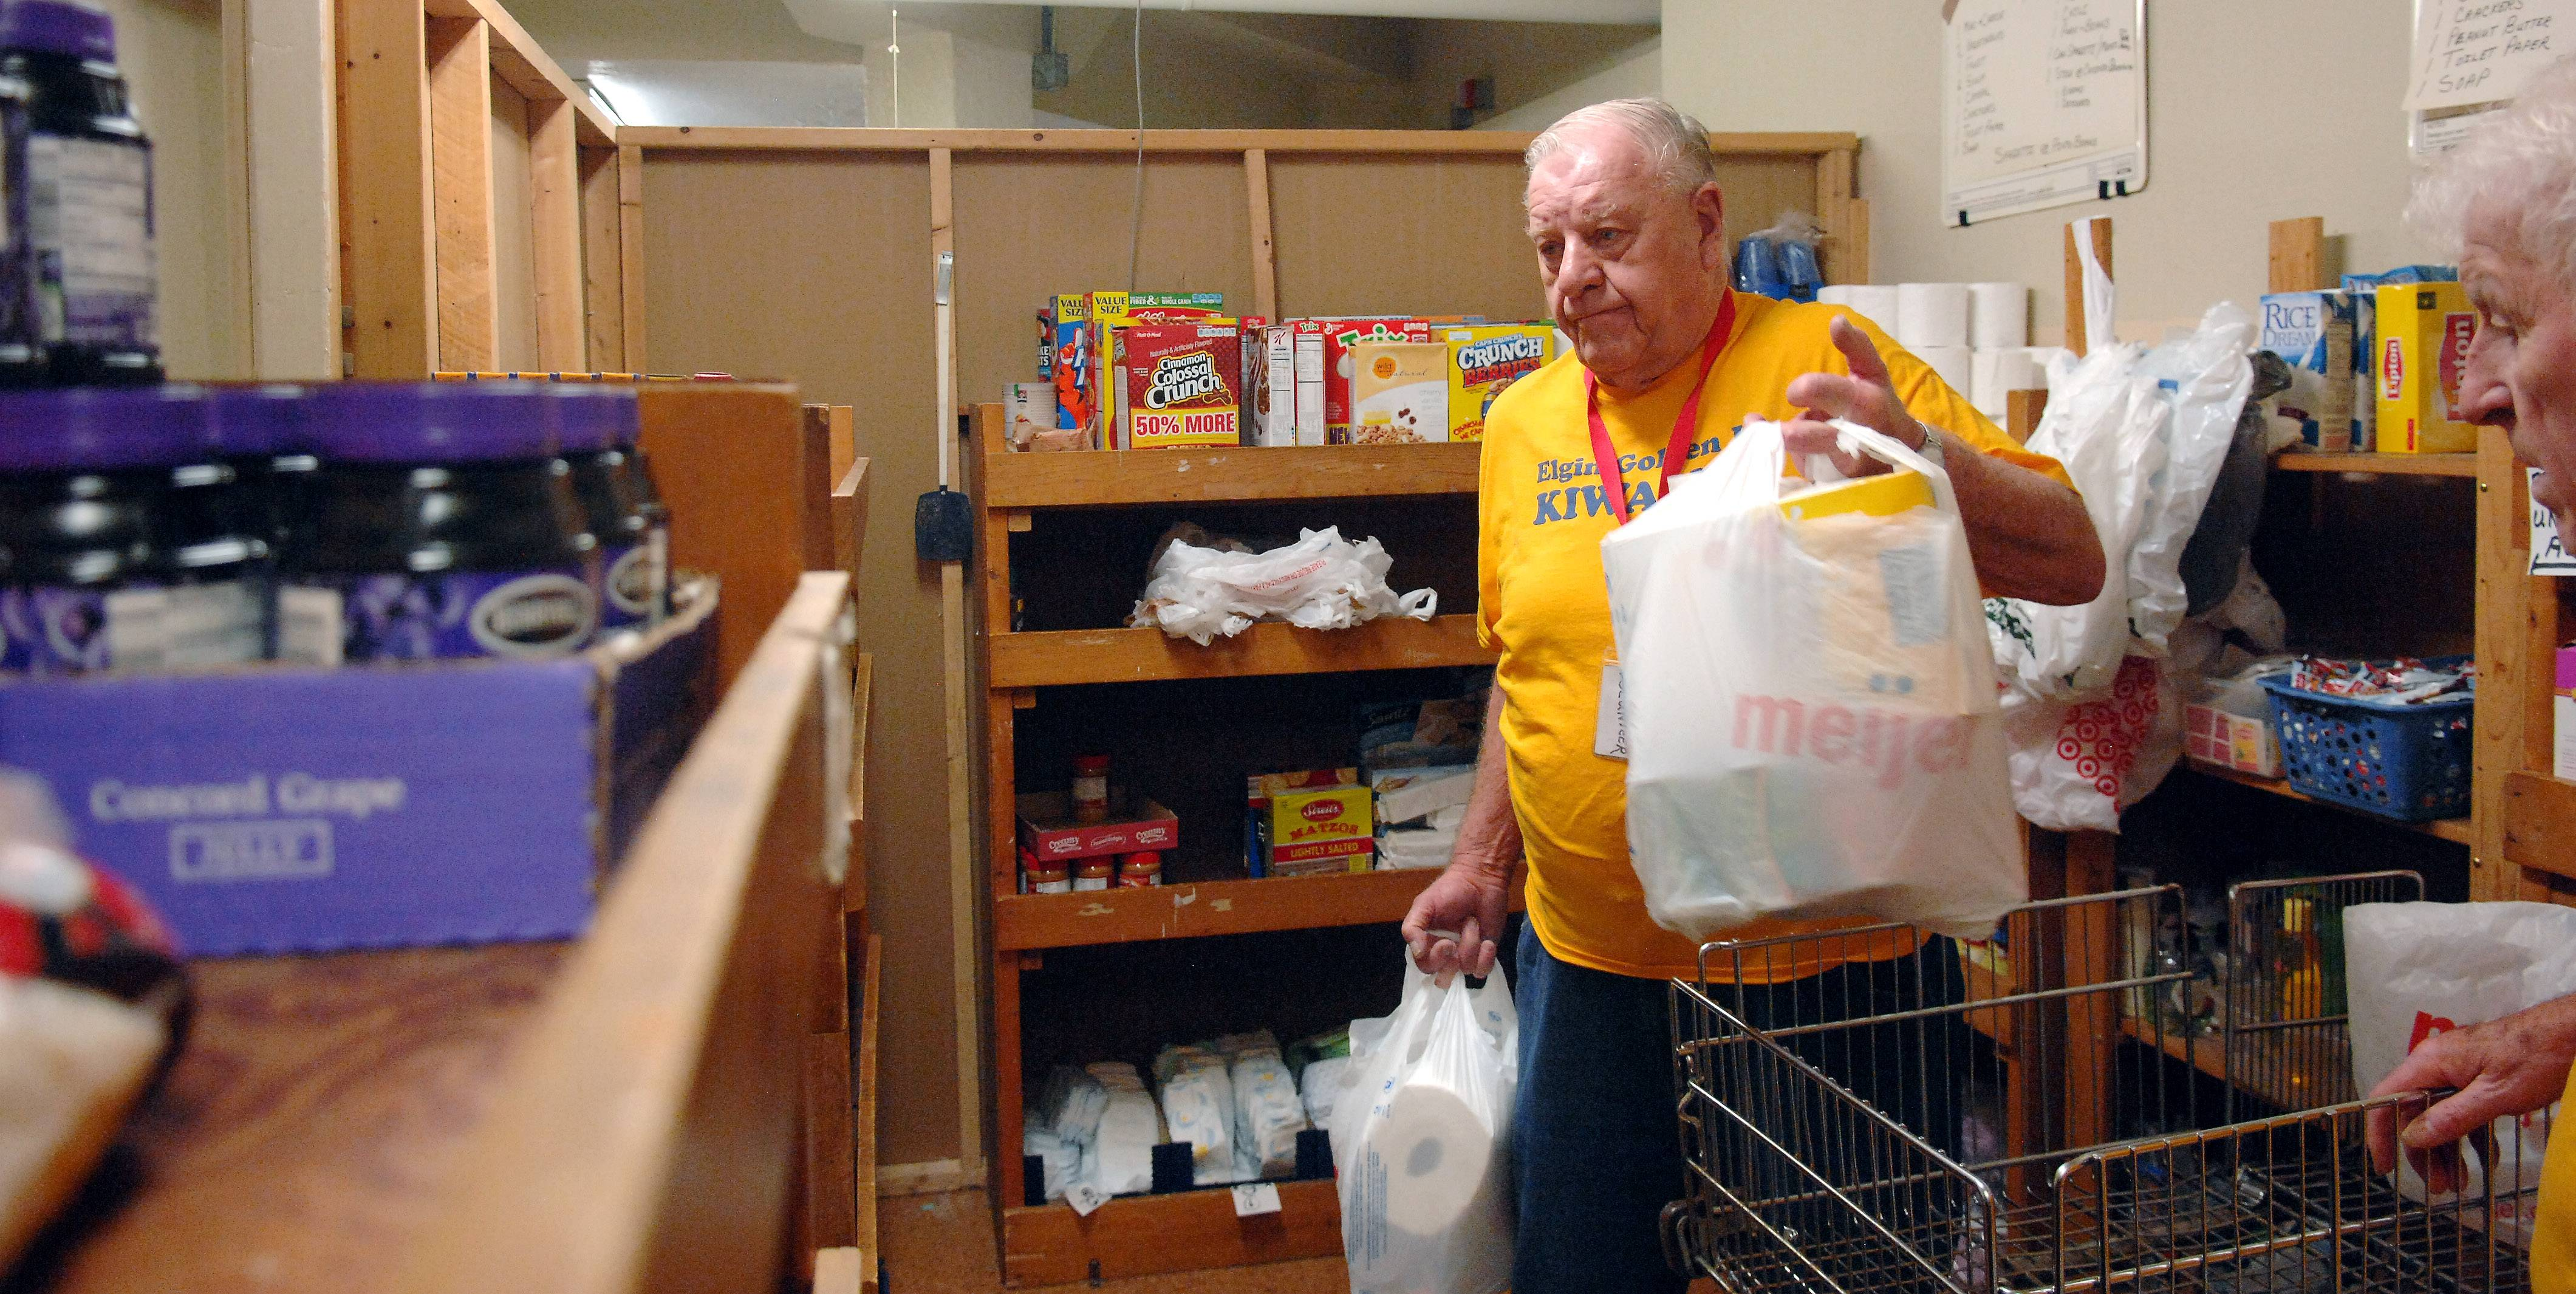 Volunteer Charles Awe of Elgin brings out bags of groceries he and fellow Golden K Kiwanis member Al Mink packed up Monday for a family at All People's Interfaith Food Pantry in Elgin.